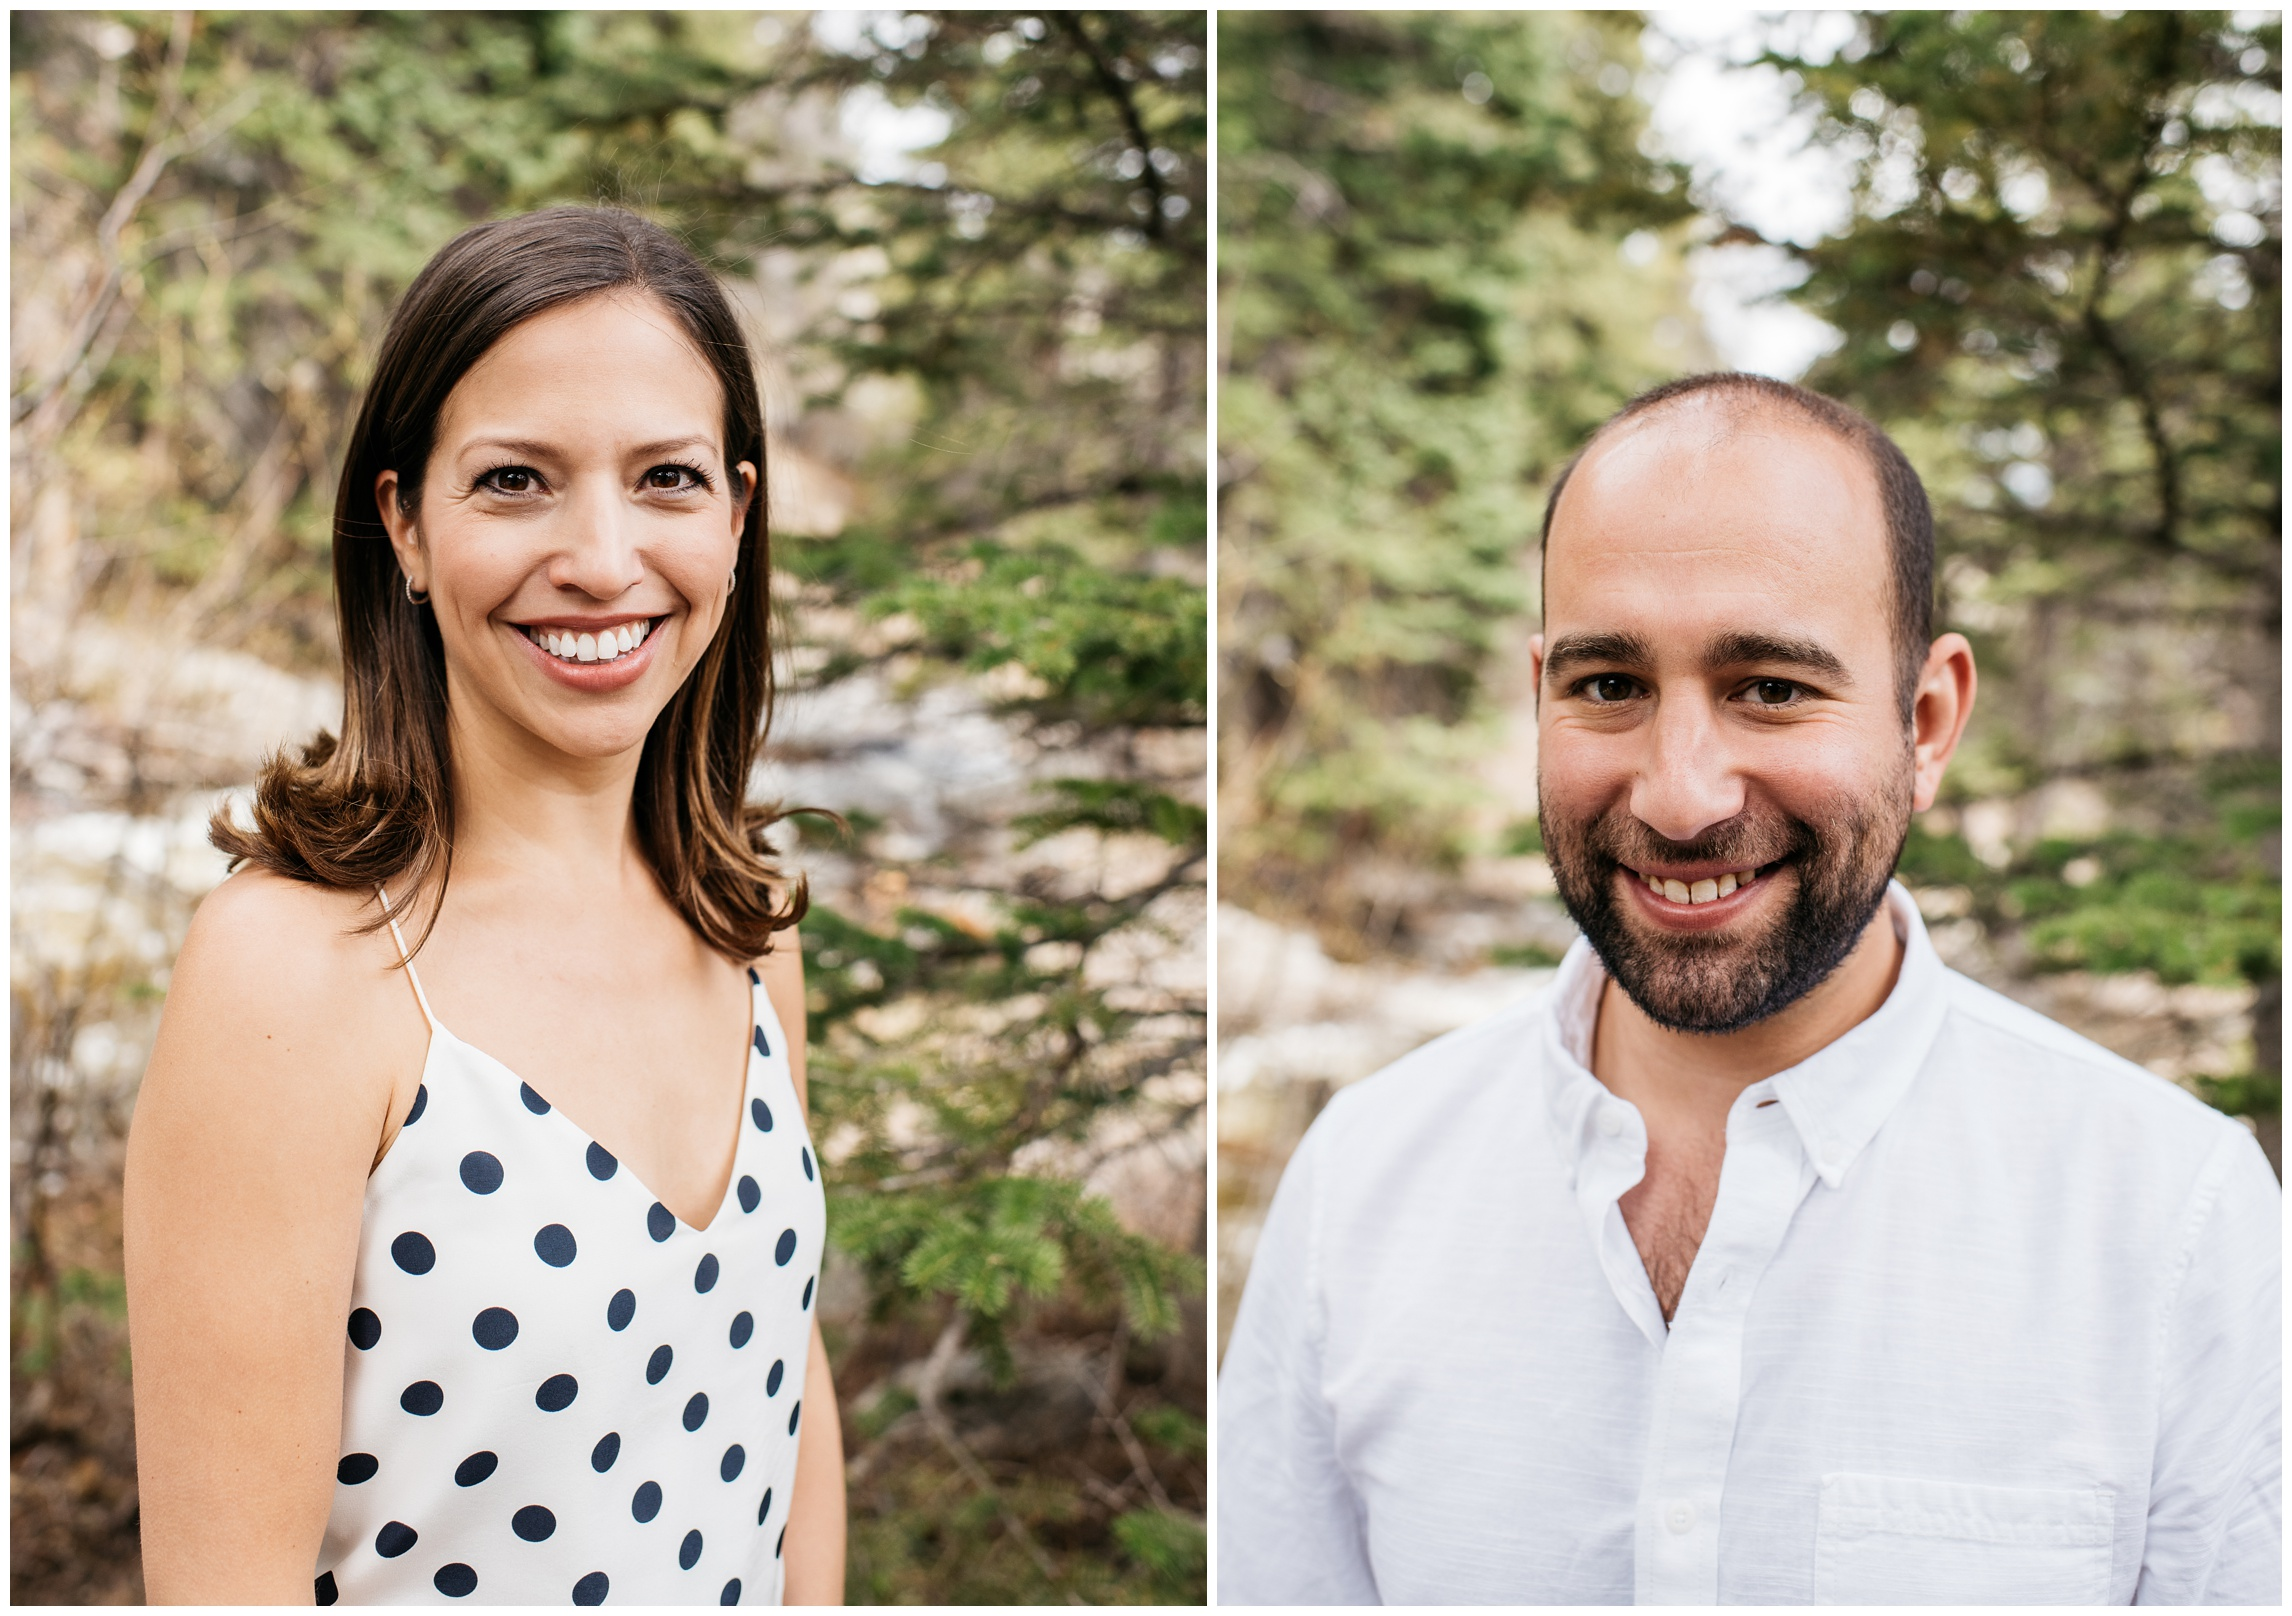 Head shots from an engaged couple at Sprague Lake in Rocky Mountain National Park, Colorado. Engagement photography by Sonja Salzburg of Sonja K Photography.